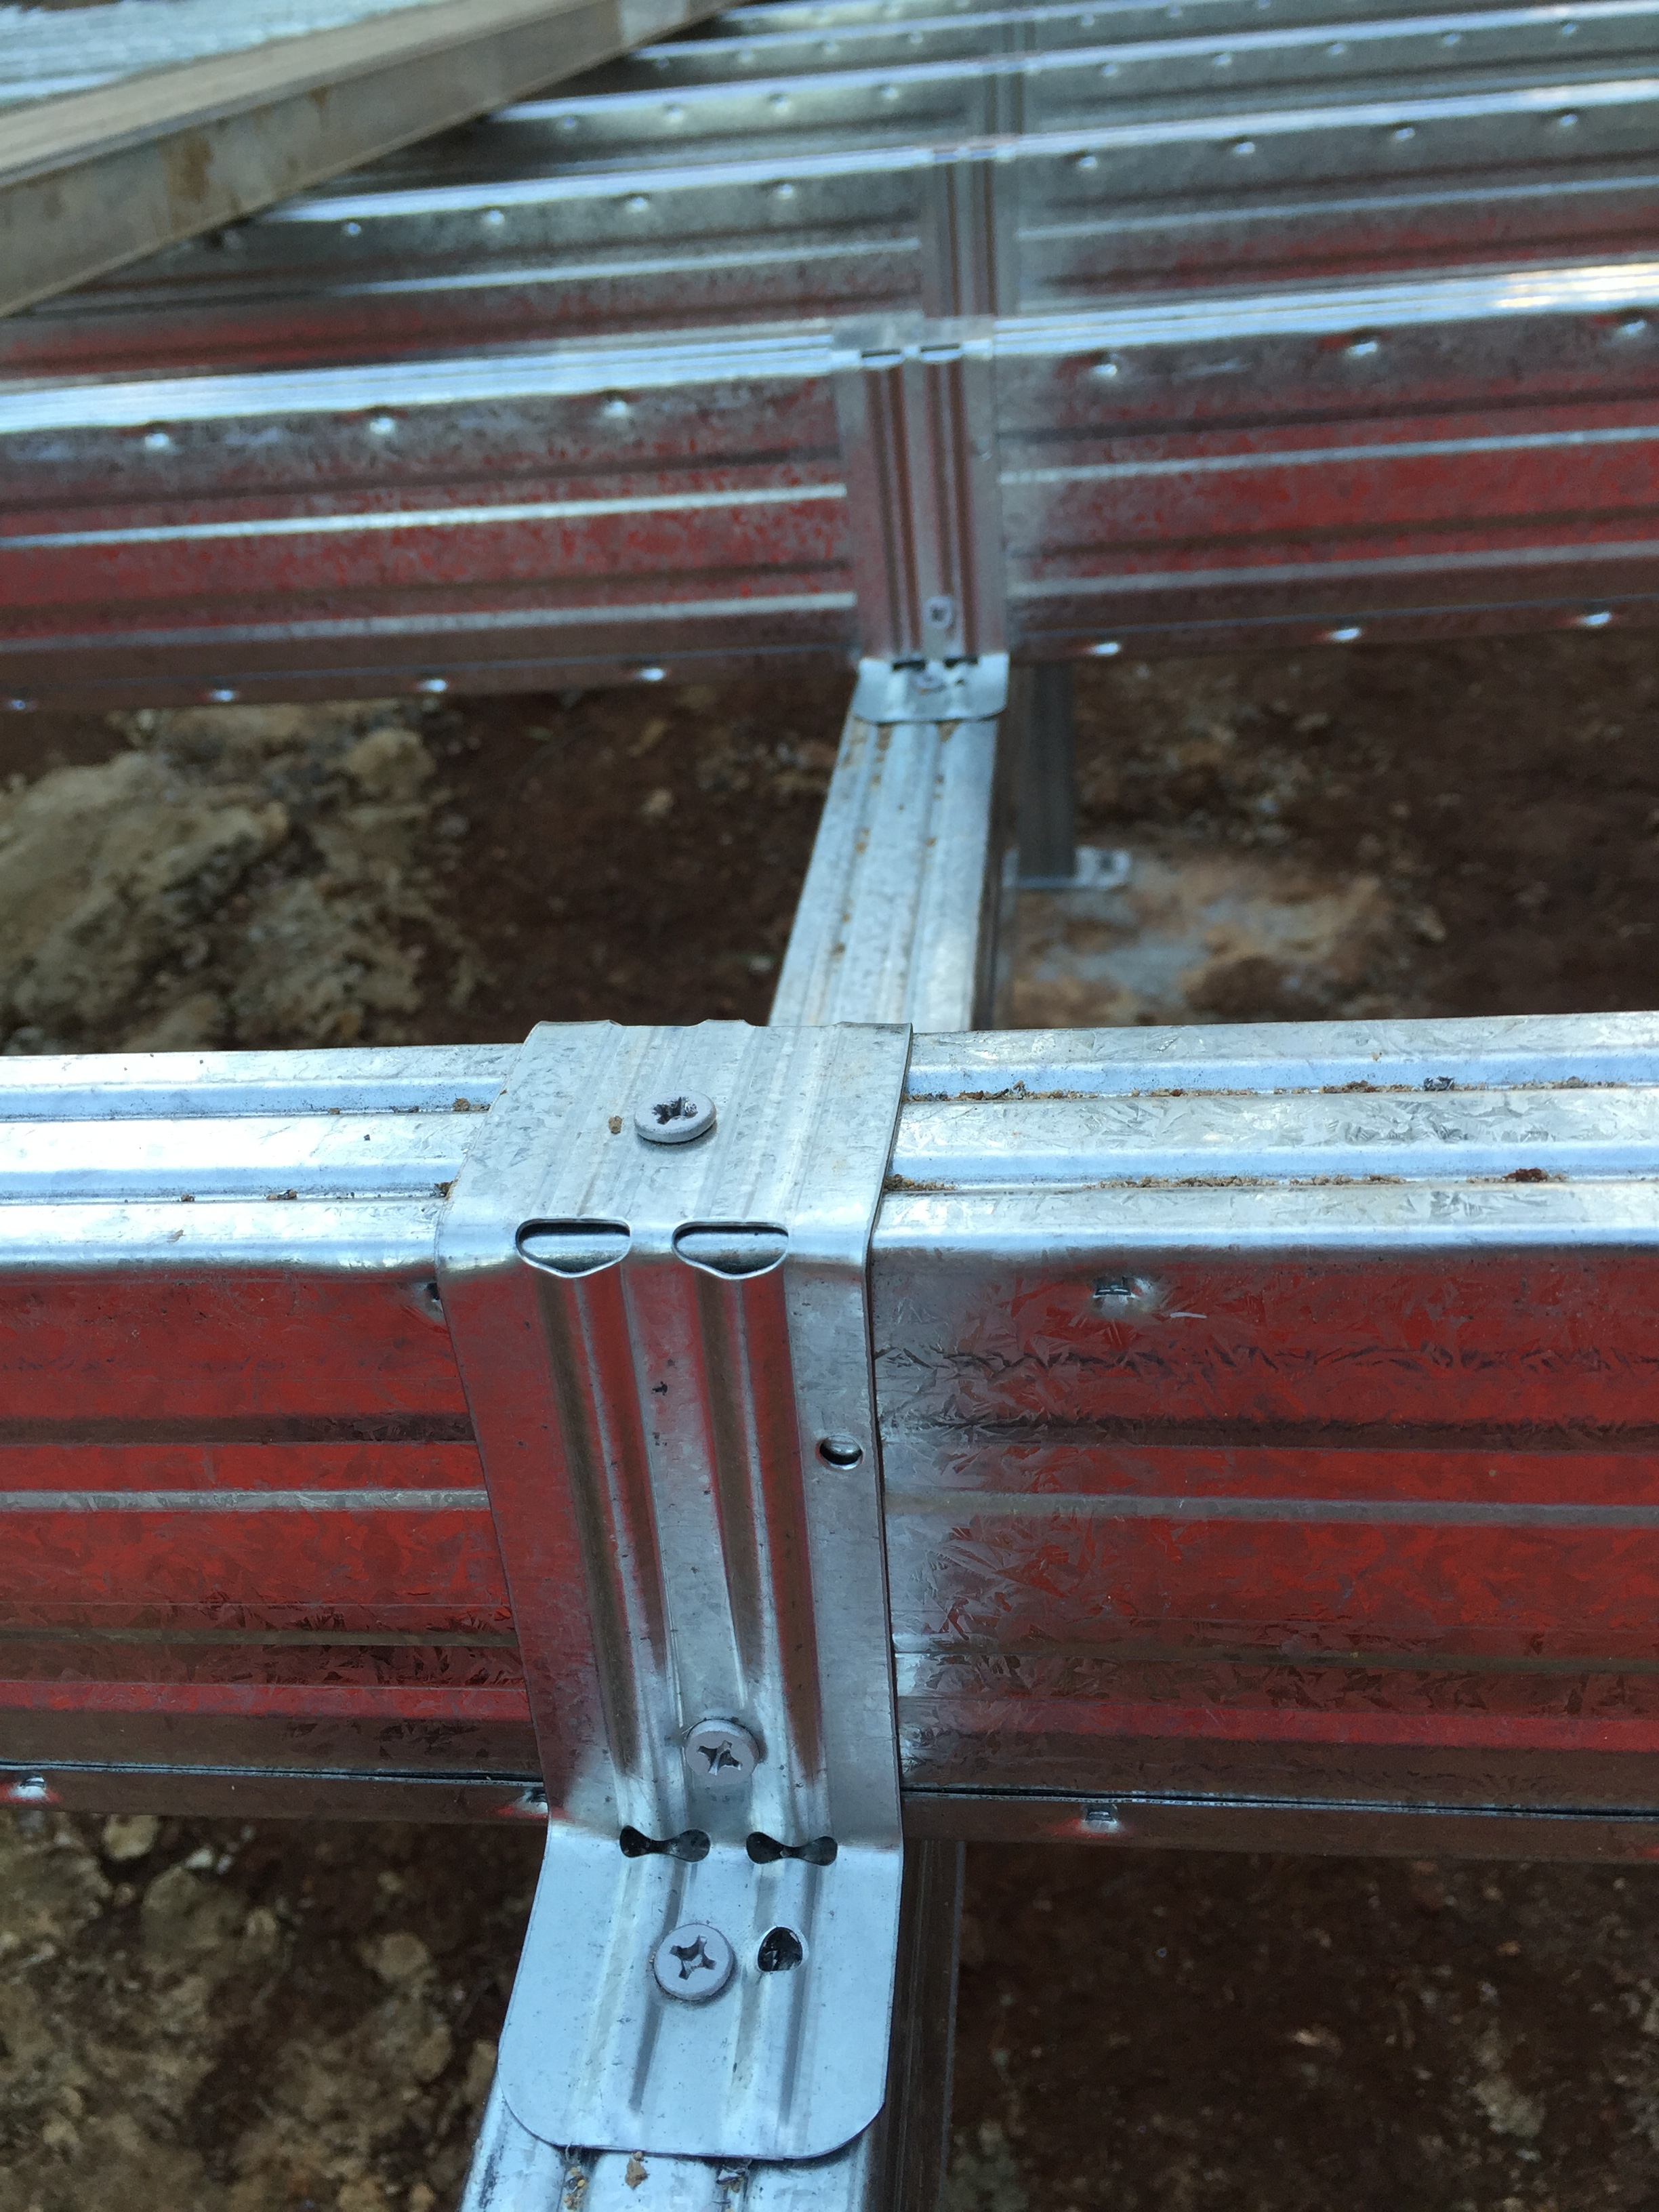 Boxspan steel floor subframing completed, close up view of the top hat brackets attaching the joists to the bearers.